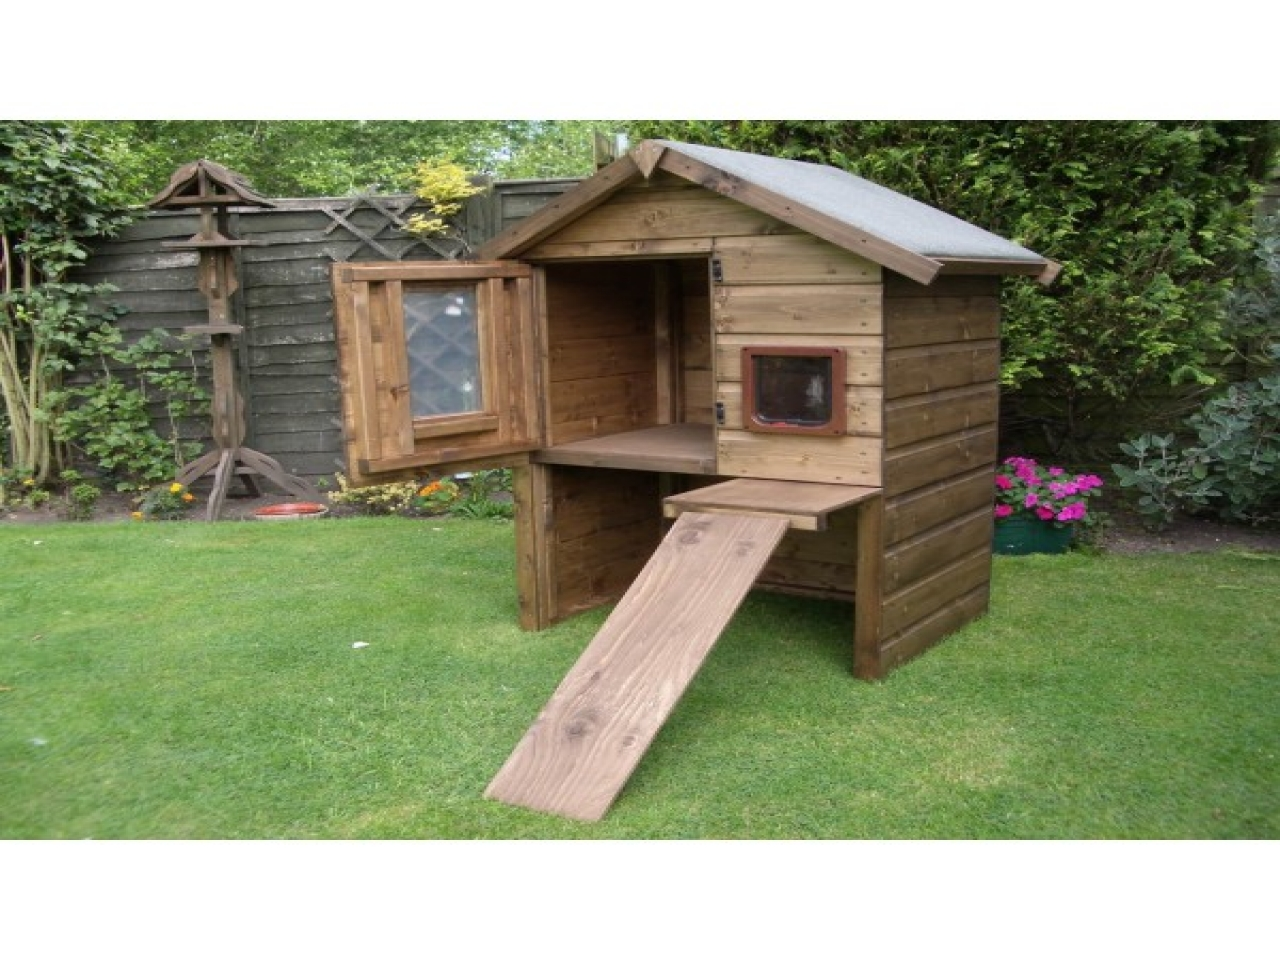 Outdoor Cat House Insulated Outdoor Cat Houses, Cat House